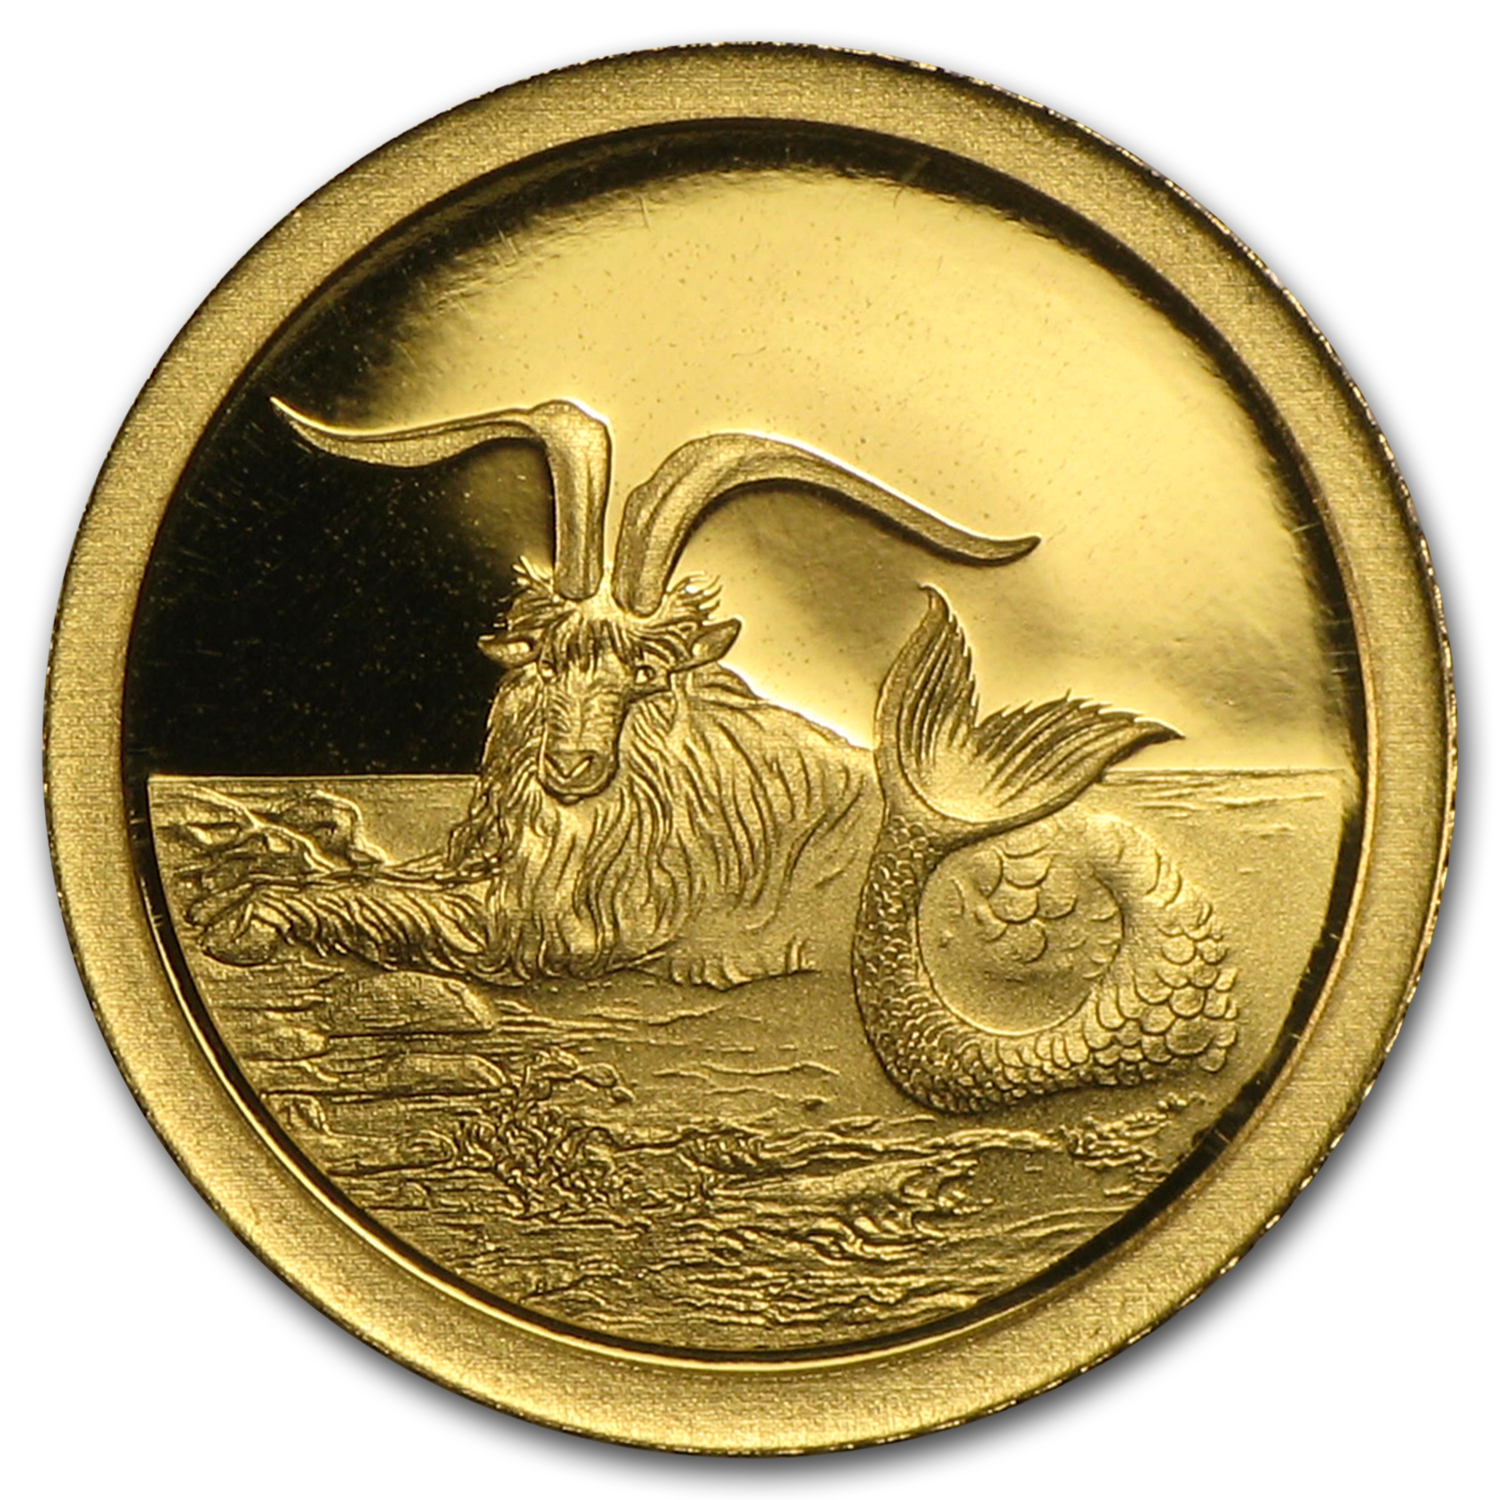 2015 Tokelau 1/2 gram Proof Gold $5 Capricornus the Goatfish